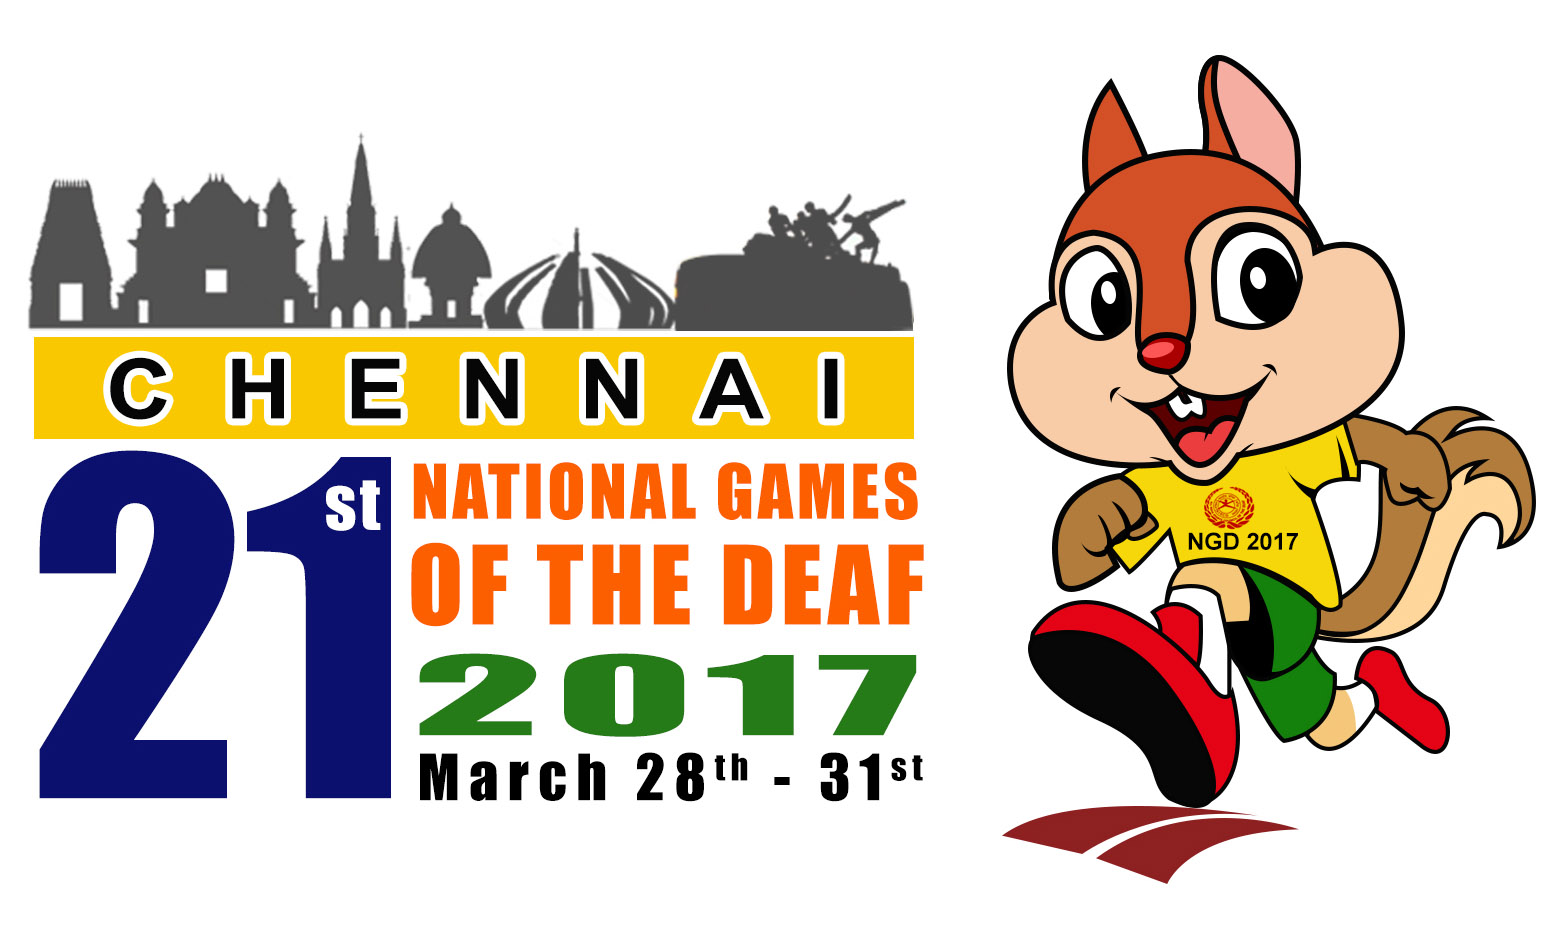 21st National Games of the deaf, Chennai